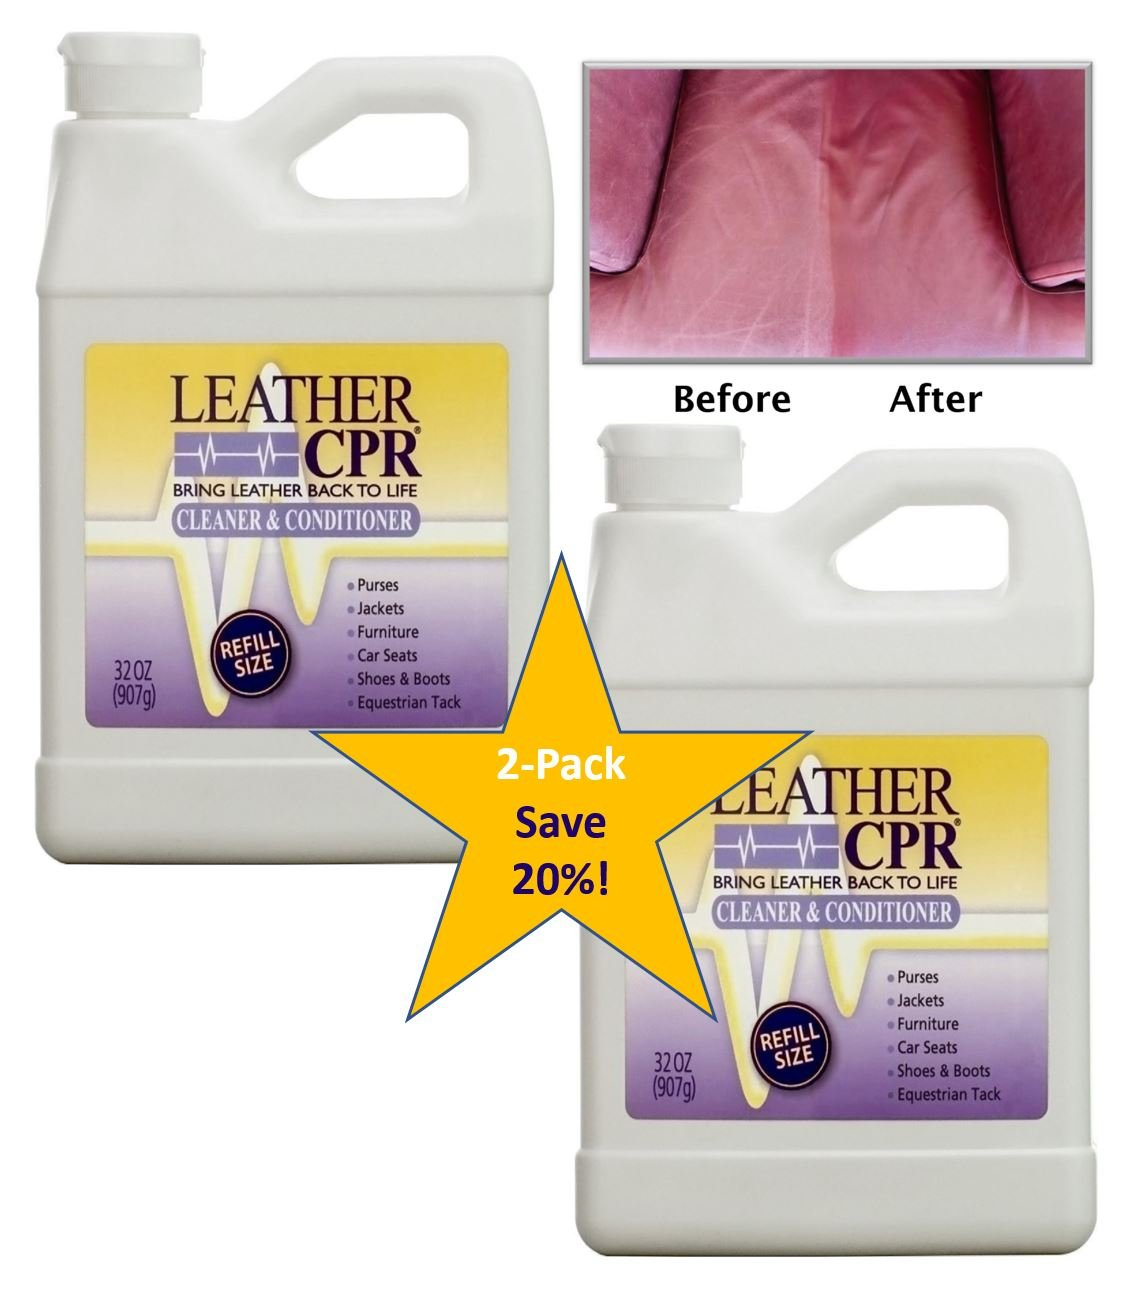 101feab042e Leather CPR (2PK   32oz Bottles) - Dermatologist Tested   100%  Irritant-Free Leather Cleaner   Conditioner for Your Home – Works Wonders  on Furniture